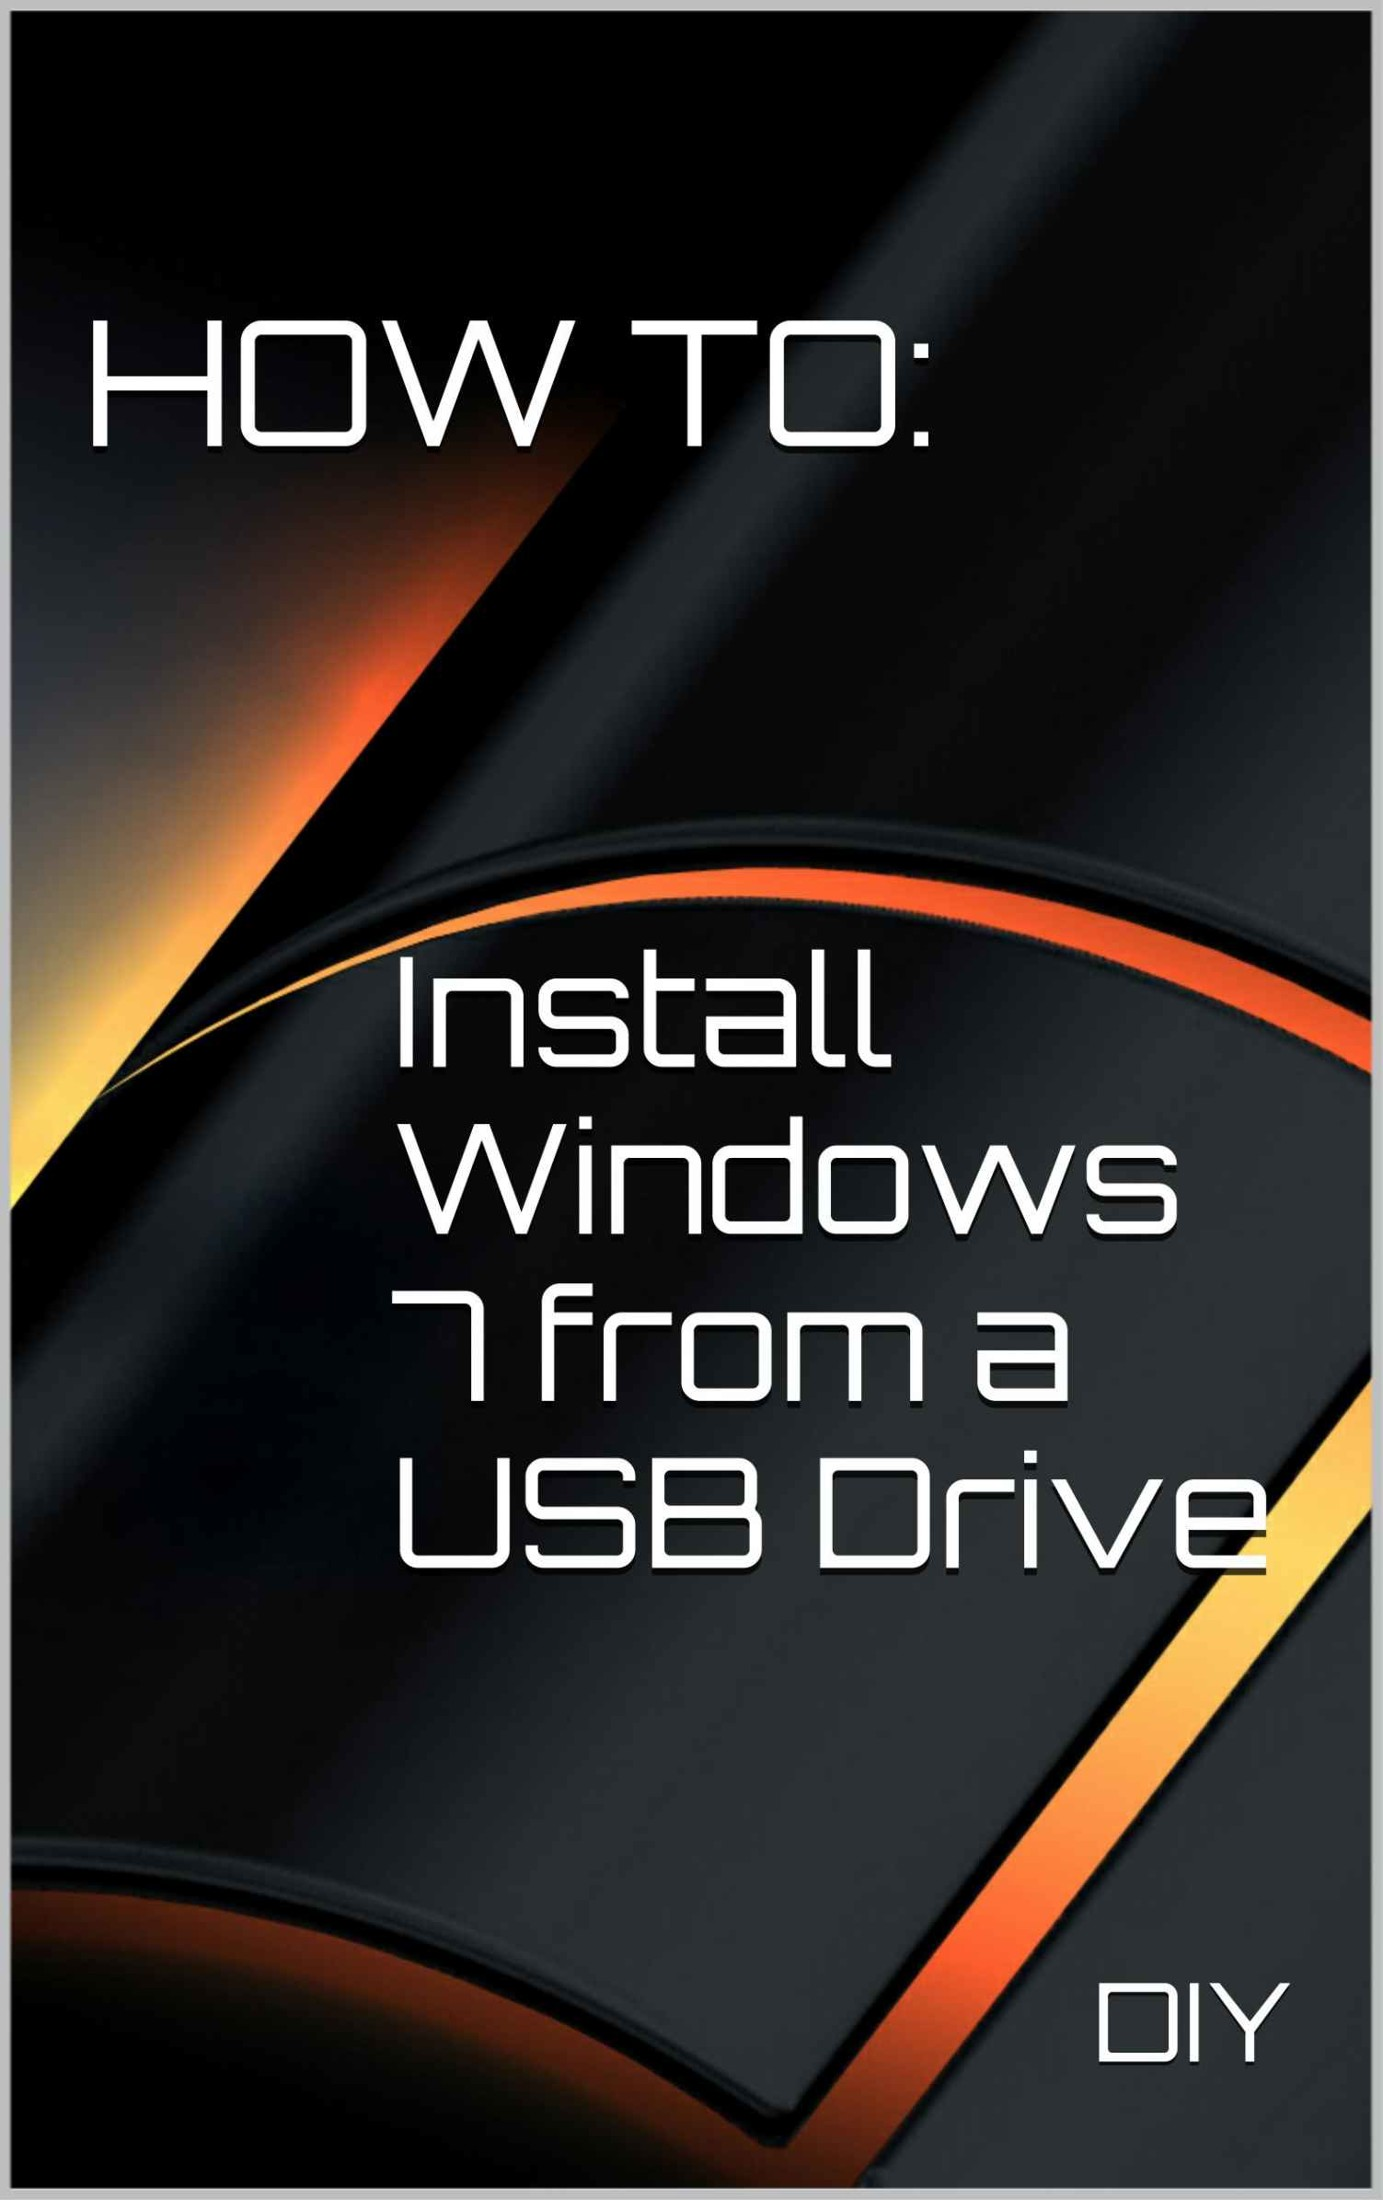 How To Install Windows 7 from a USB Drive free download